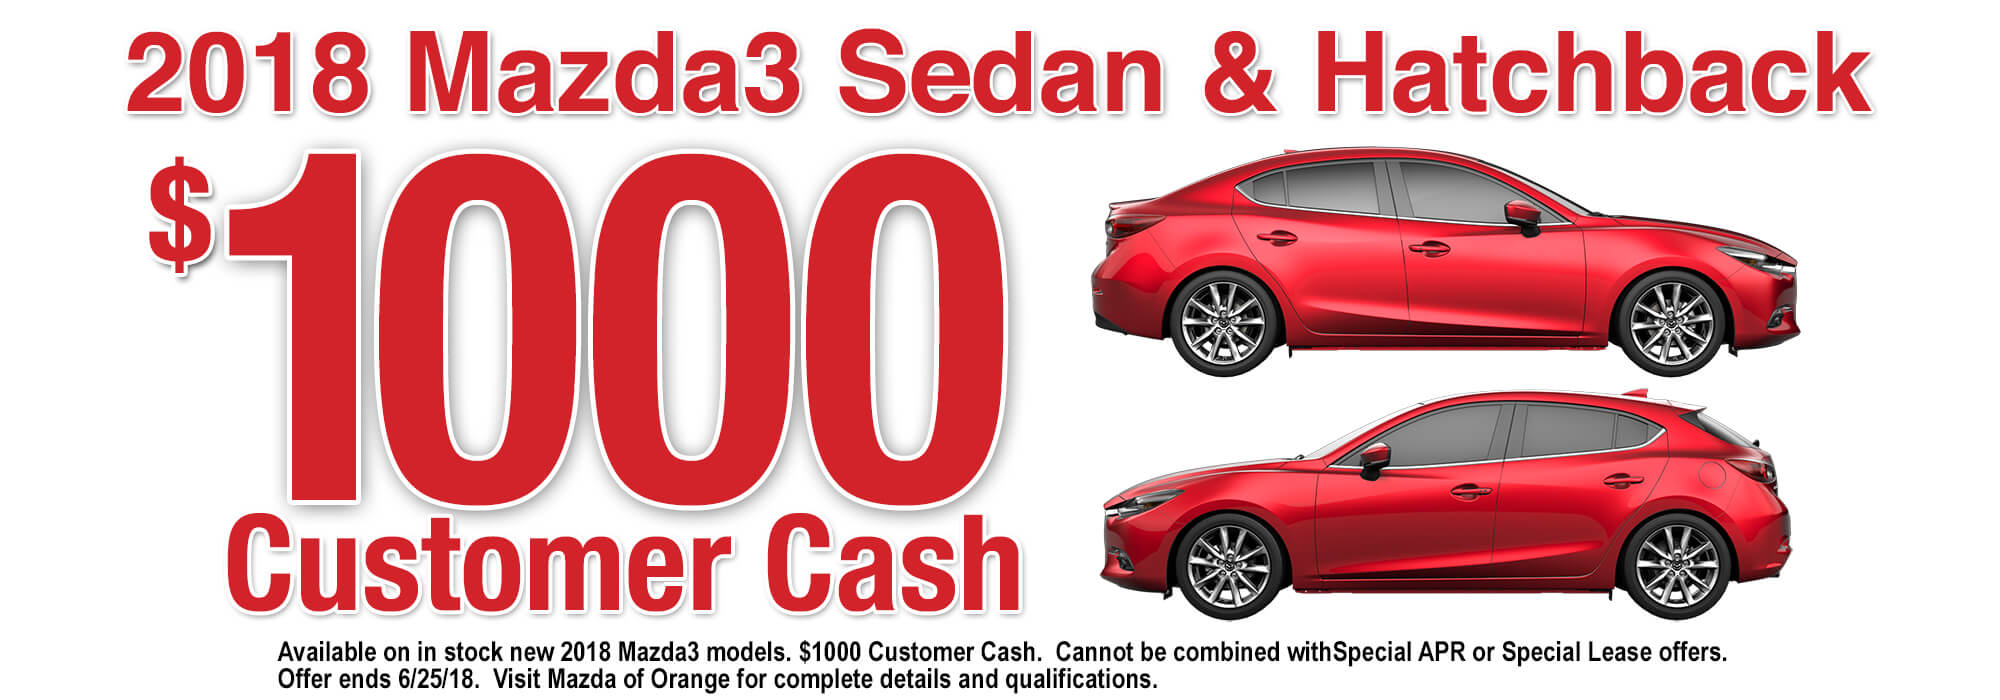 county special tustin offers offer cash huntington orange near irvine customer mazda